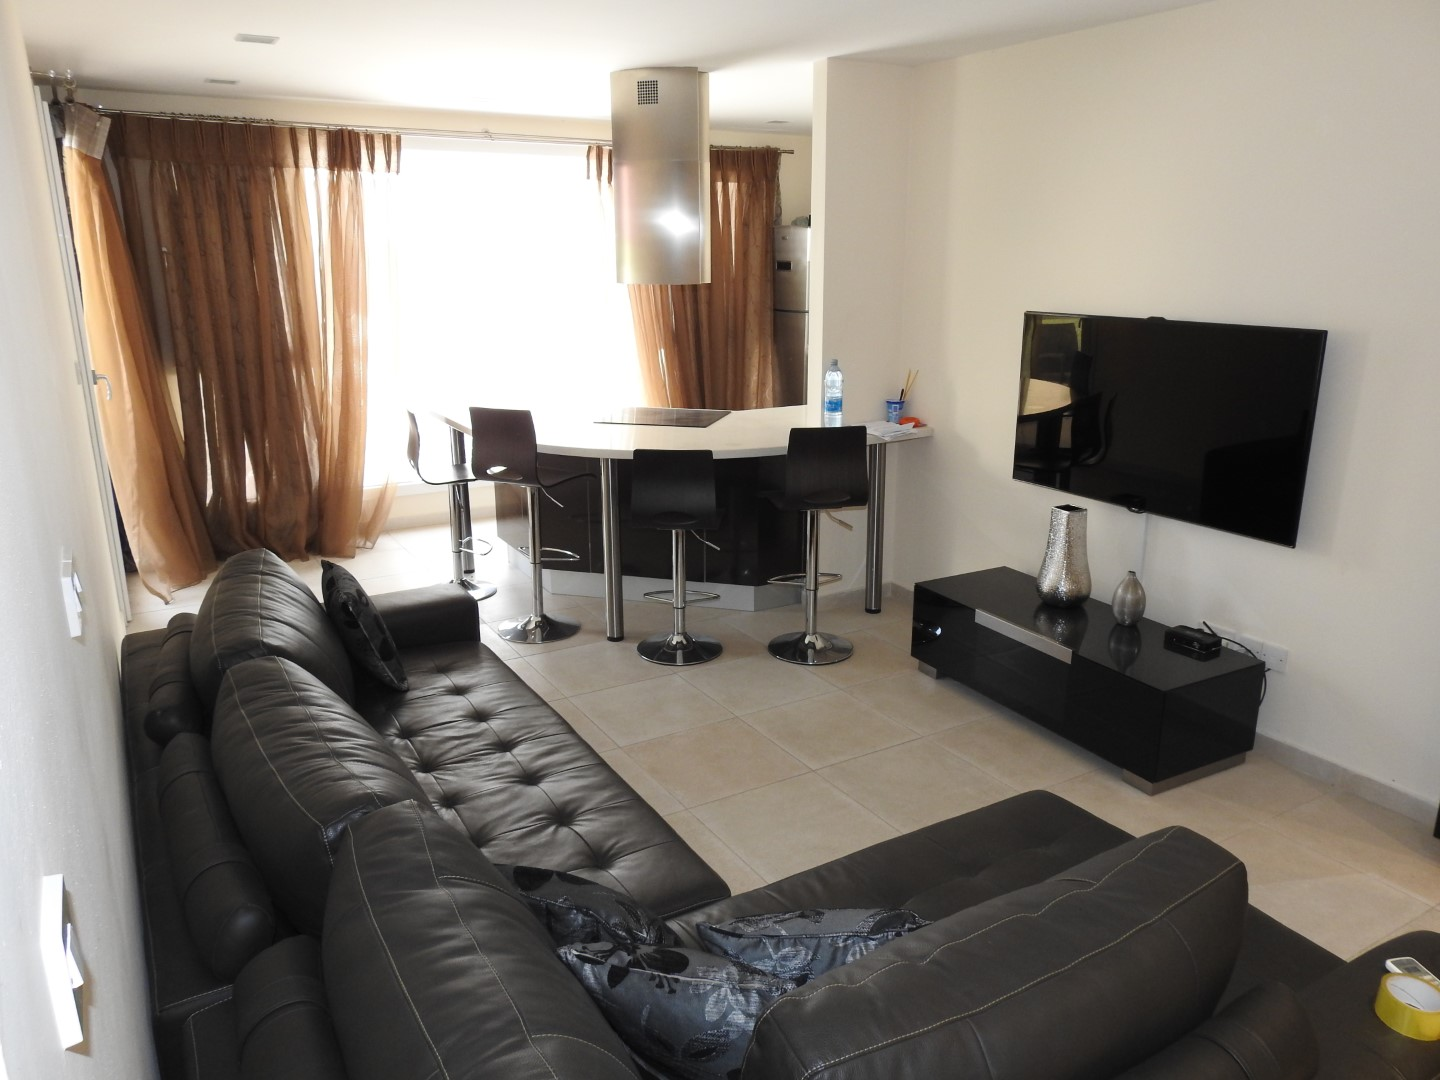 Two bedroom flat in Limassol near Crown Plaza Hotel 50m from the beach